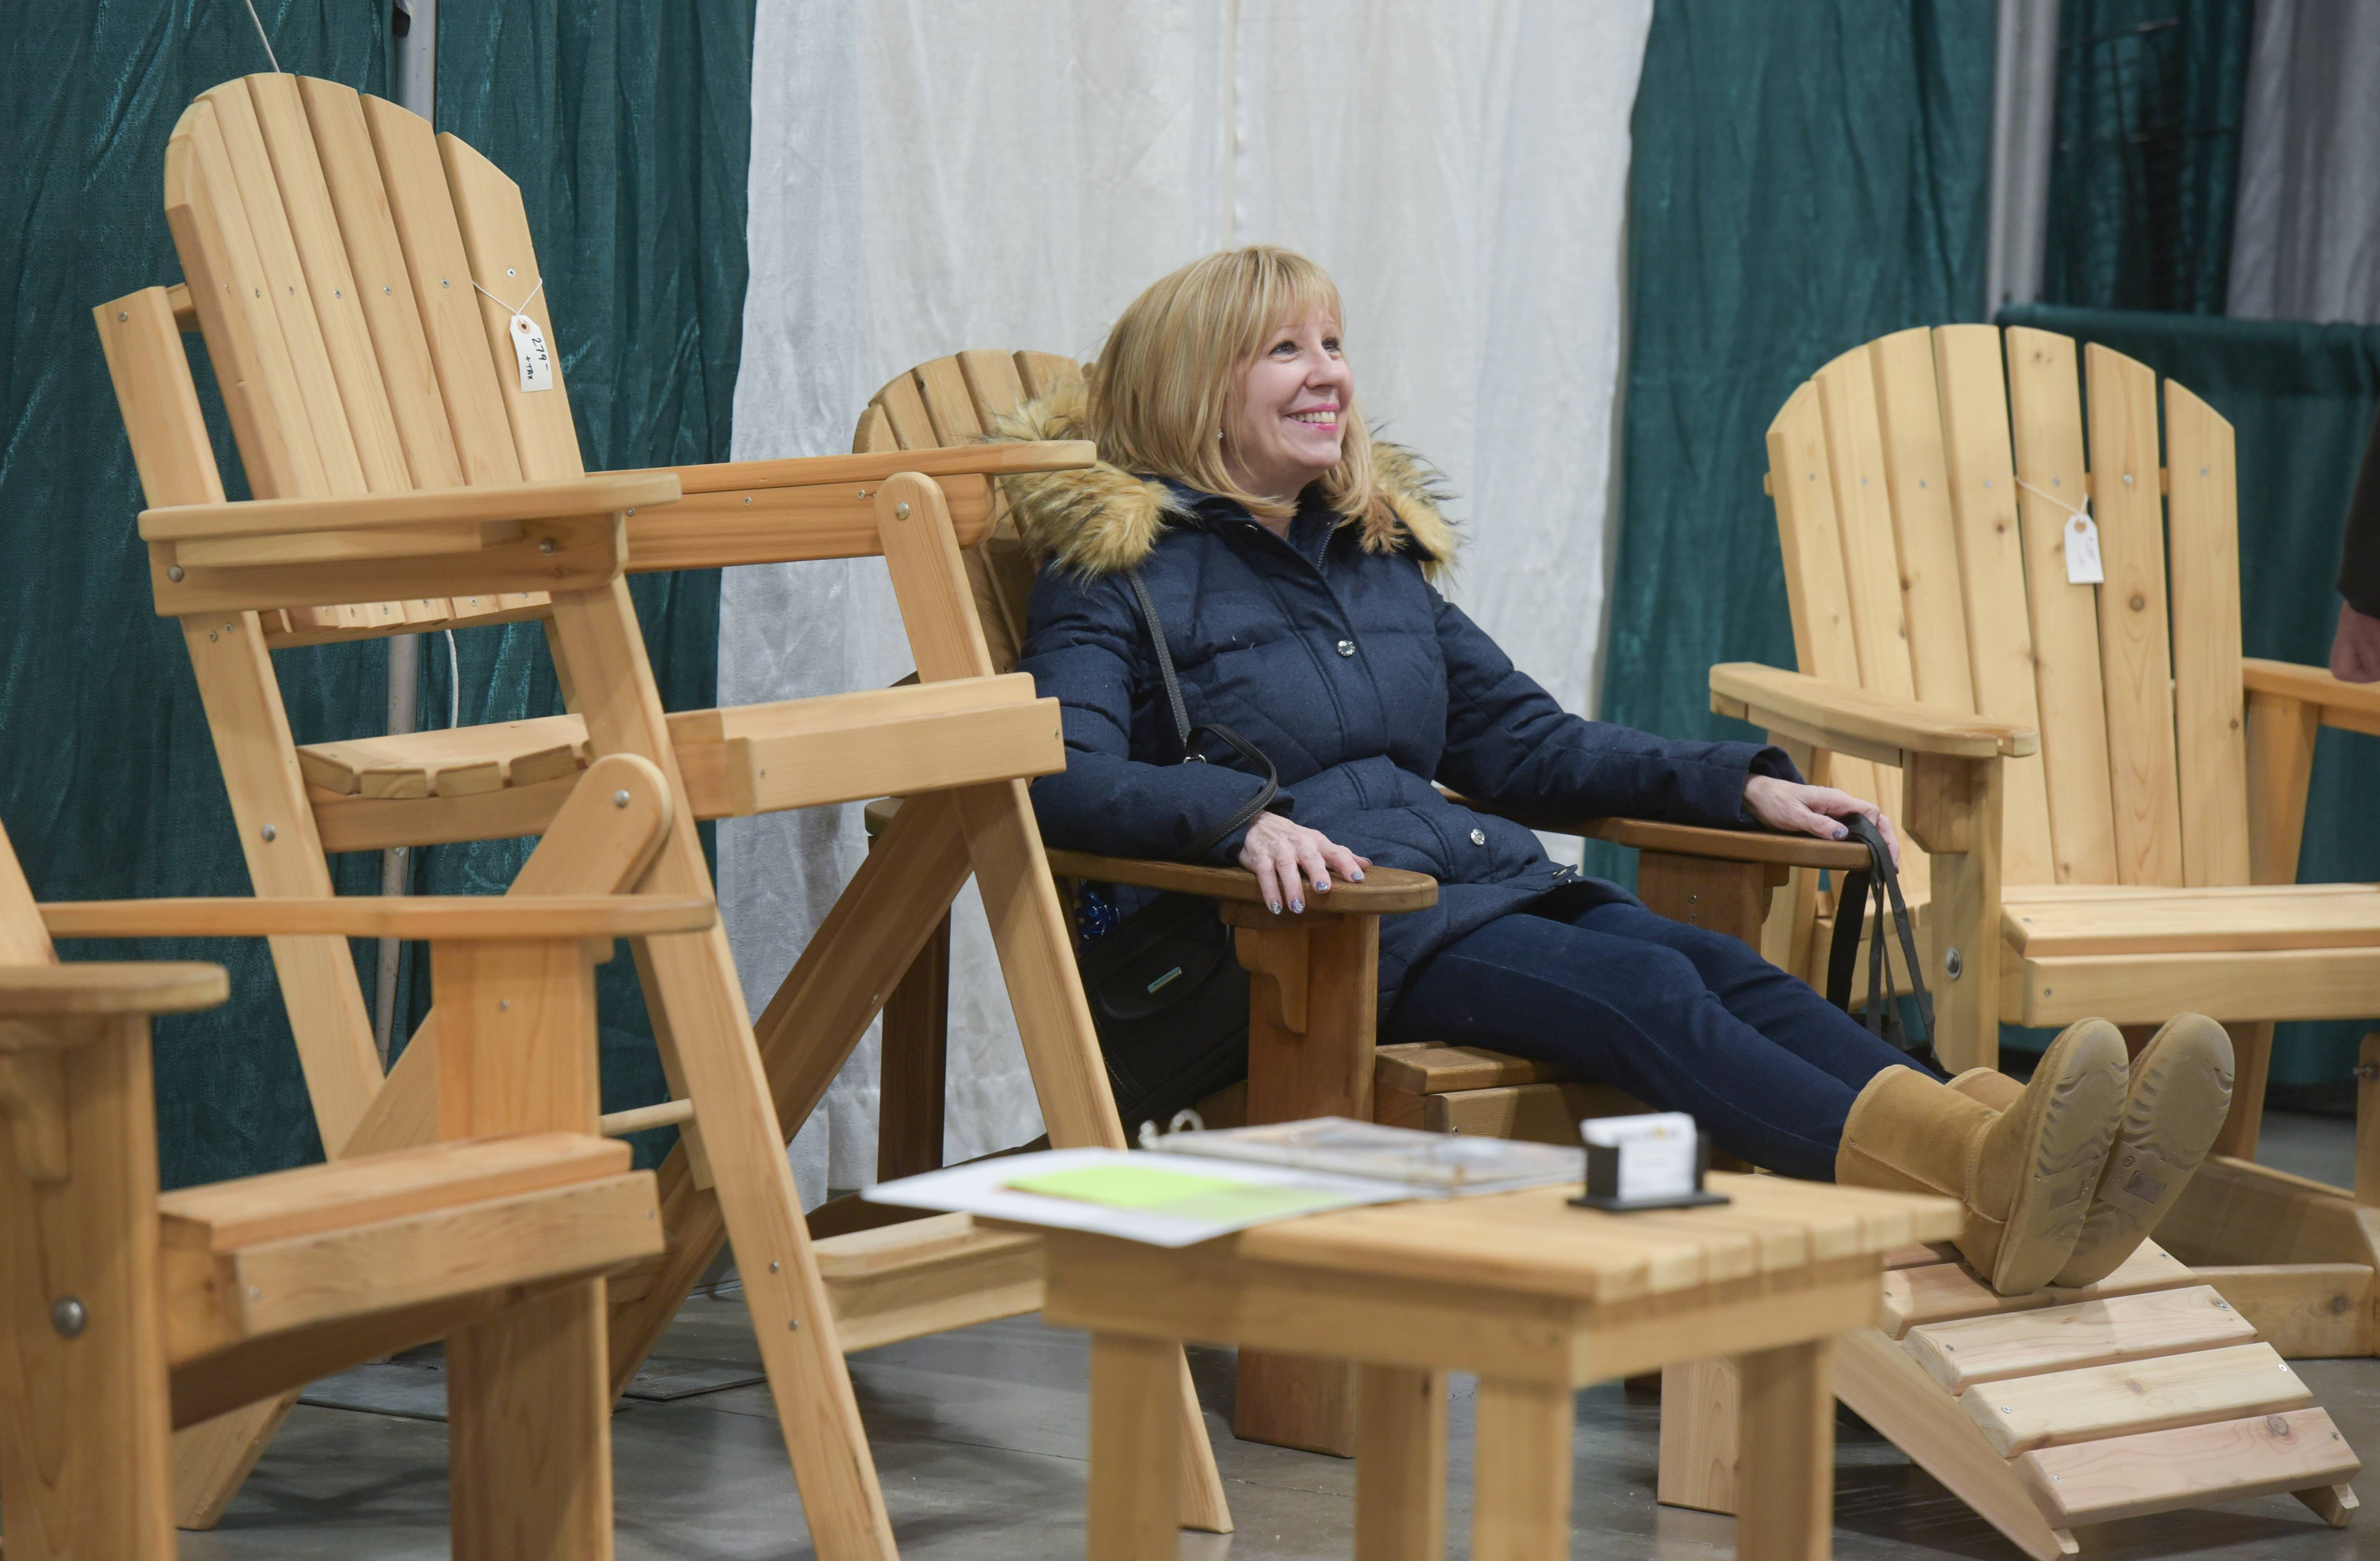 Cindy Mak of Aurora lounges in an Adirondack chair, made by Wade Thompson, owner of Wade's World of Woodworking in Batavia, during the annual Schaumburg Lake Home & Cabin Show at the Schaumburg Convention Center on Sunday.